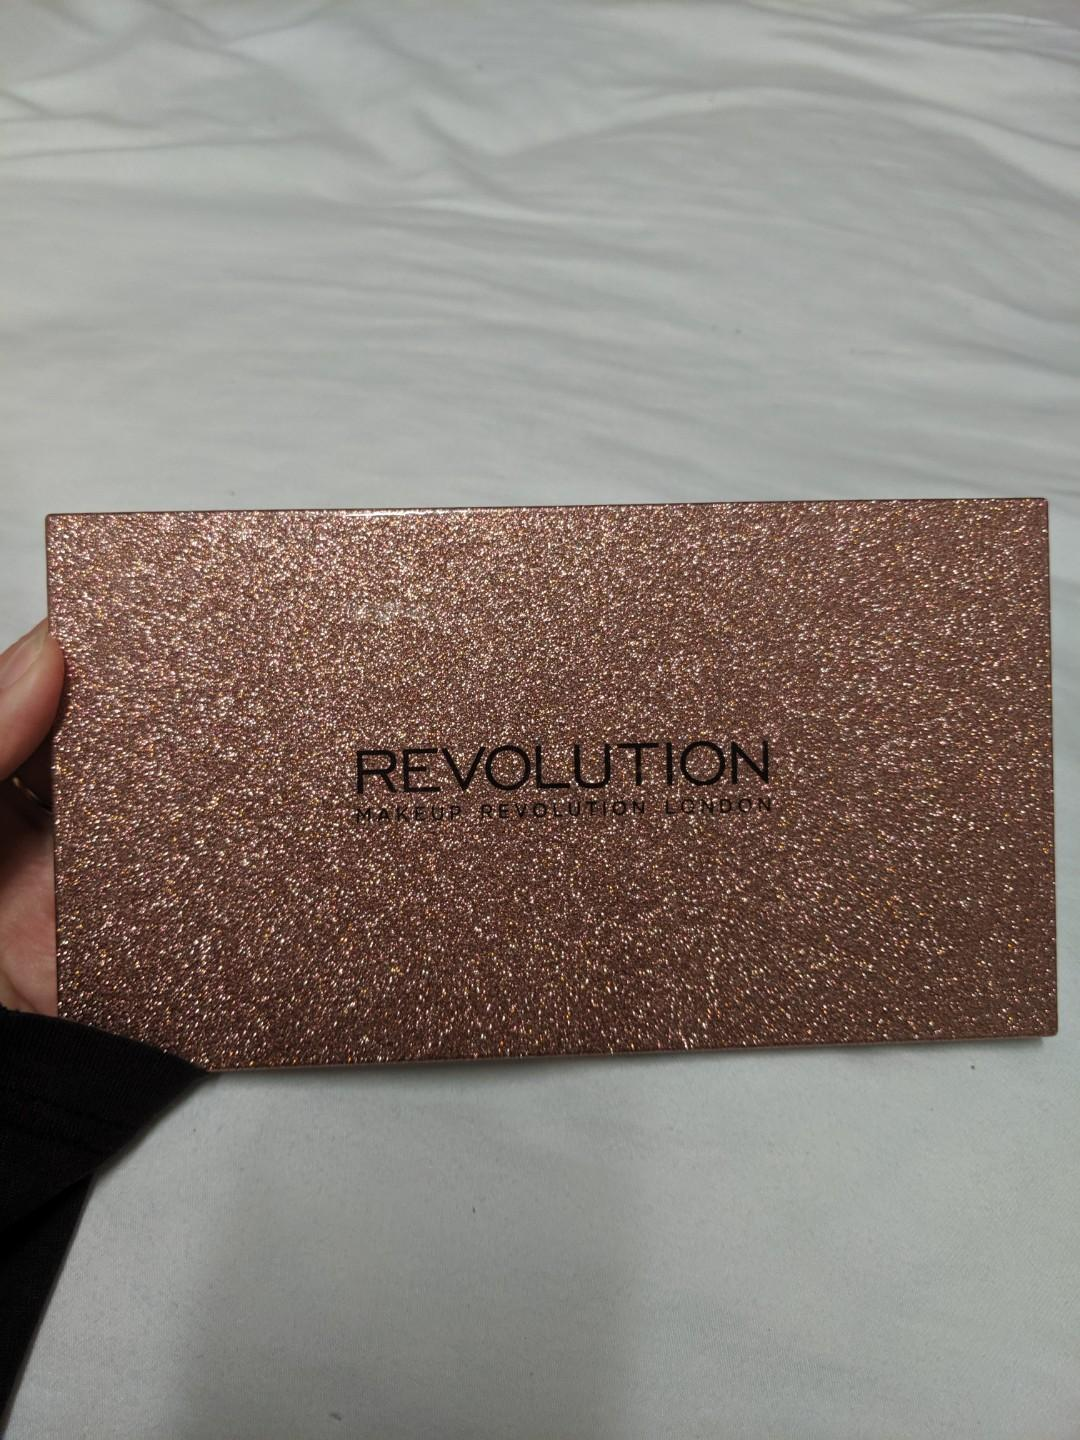 EYESHADOW PALETTES, urban decay, colourpop, revolution, morphe and bh cosmetics